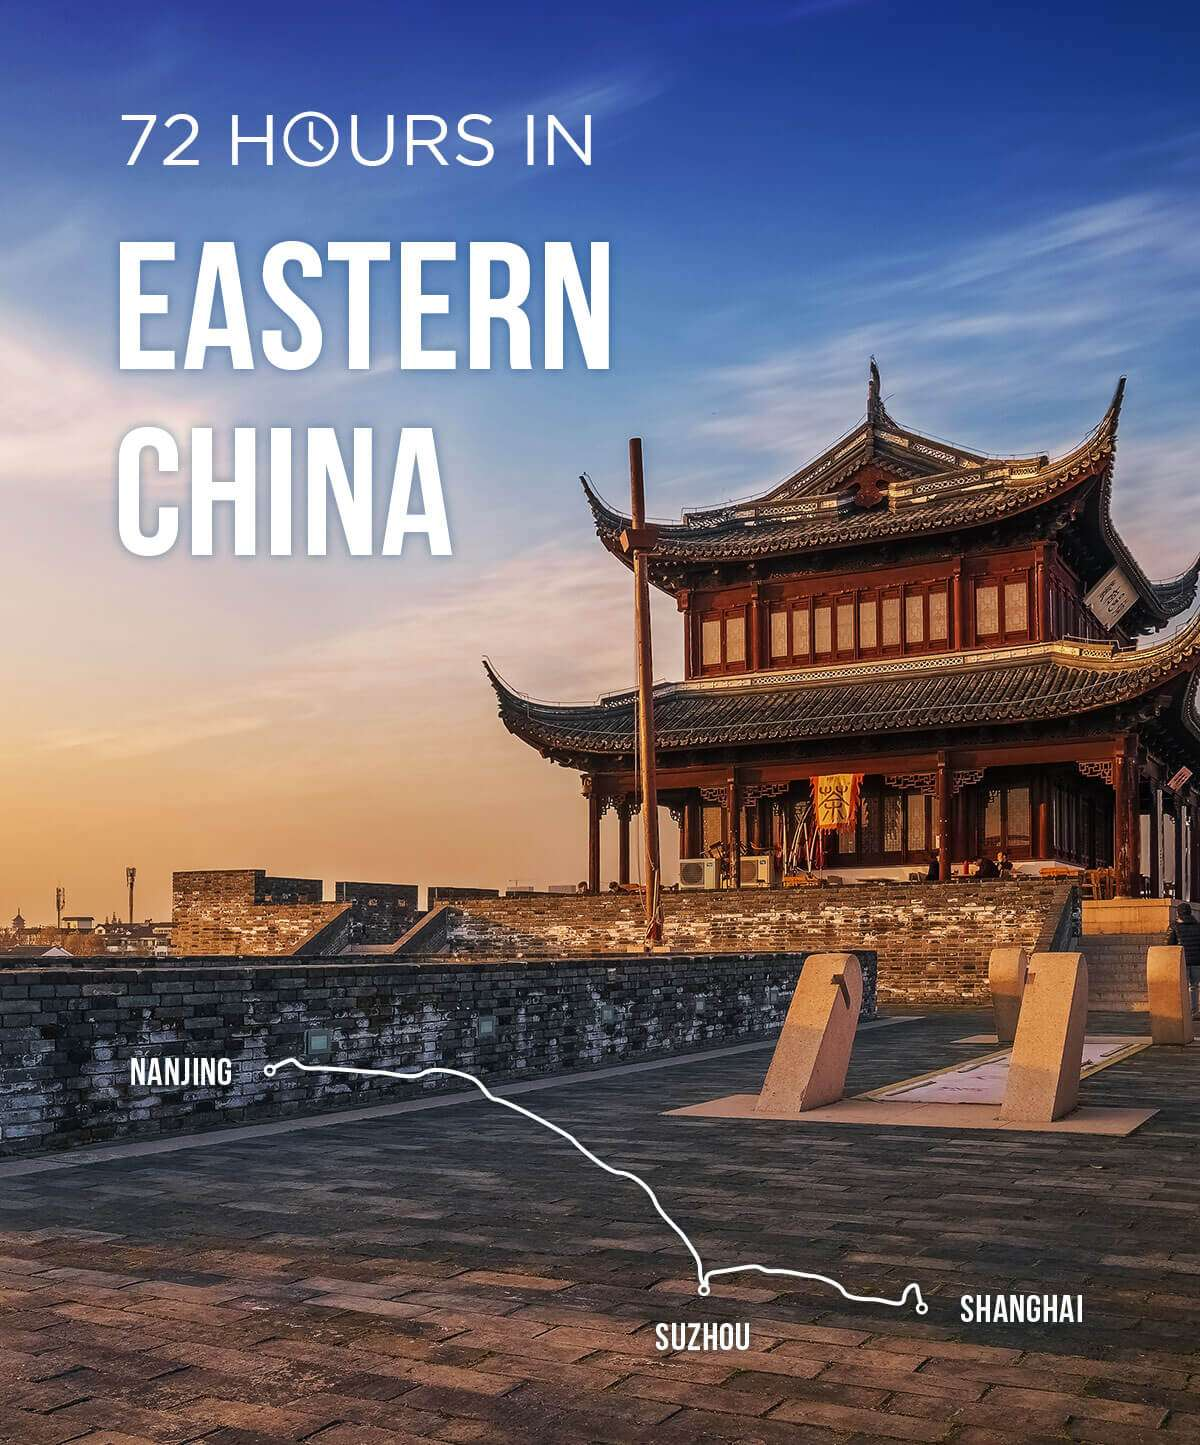 Explore Eastern China in 72 hours!